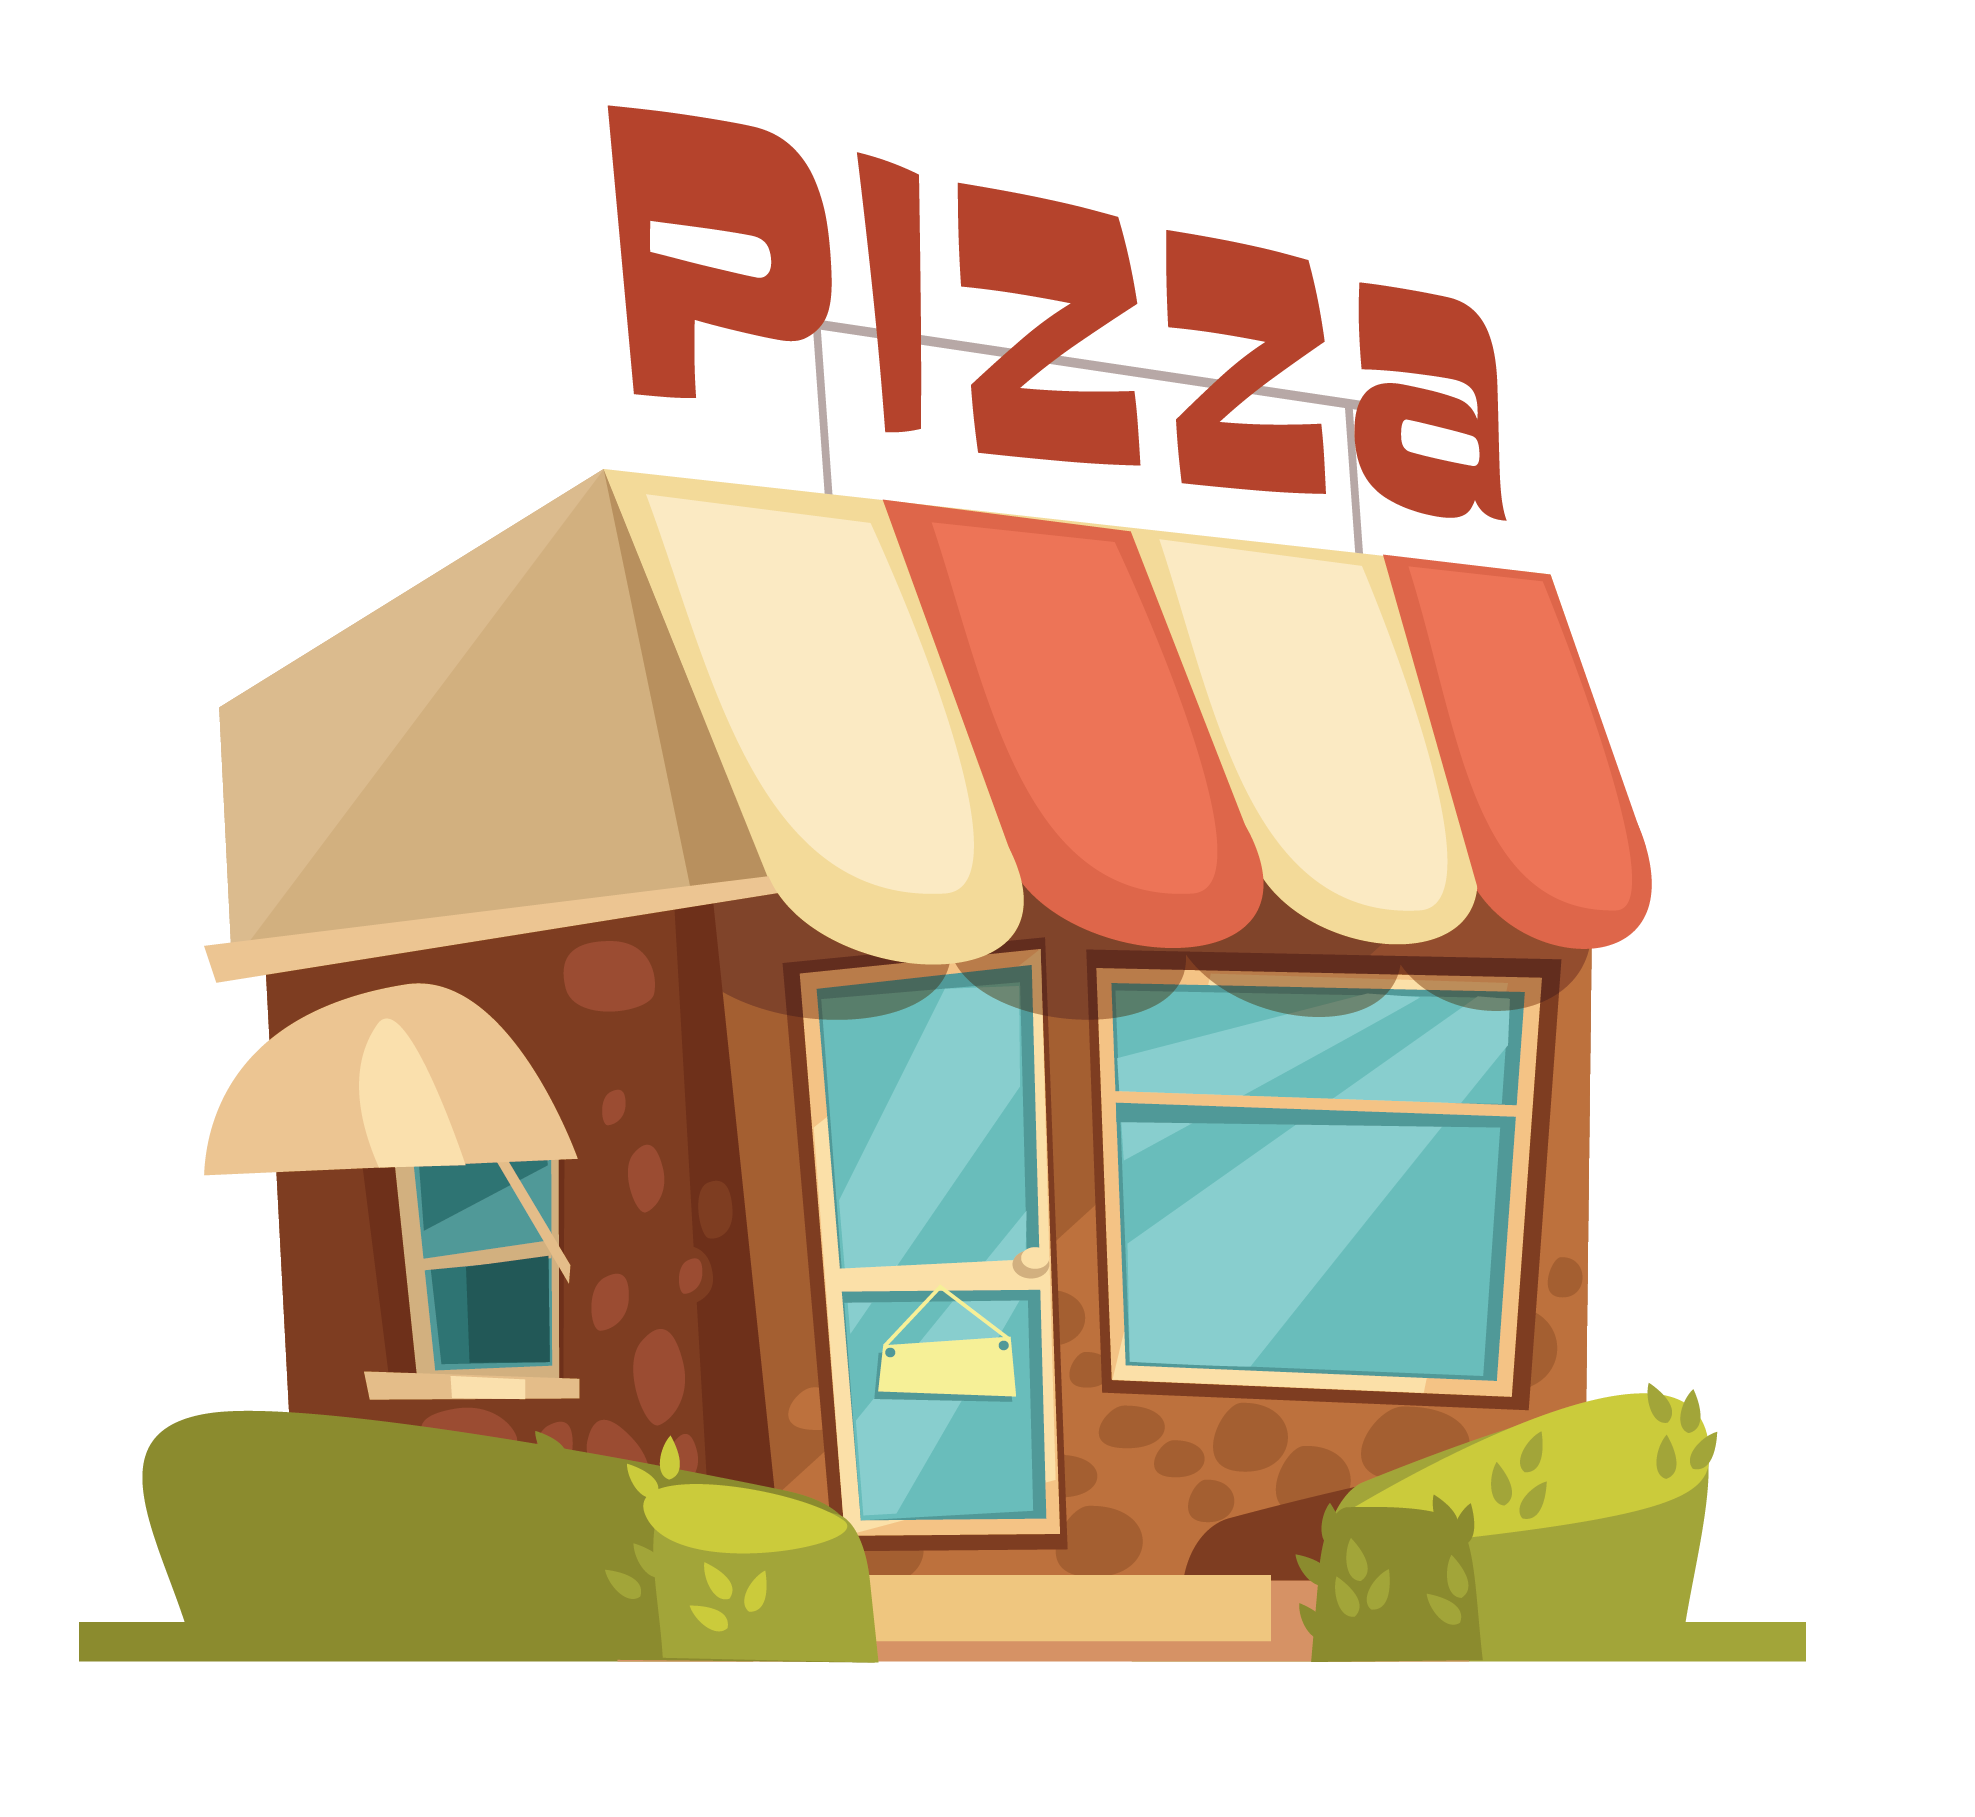 Pizza fast italian cuisine. Italy clipart home cooked food